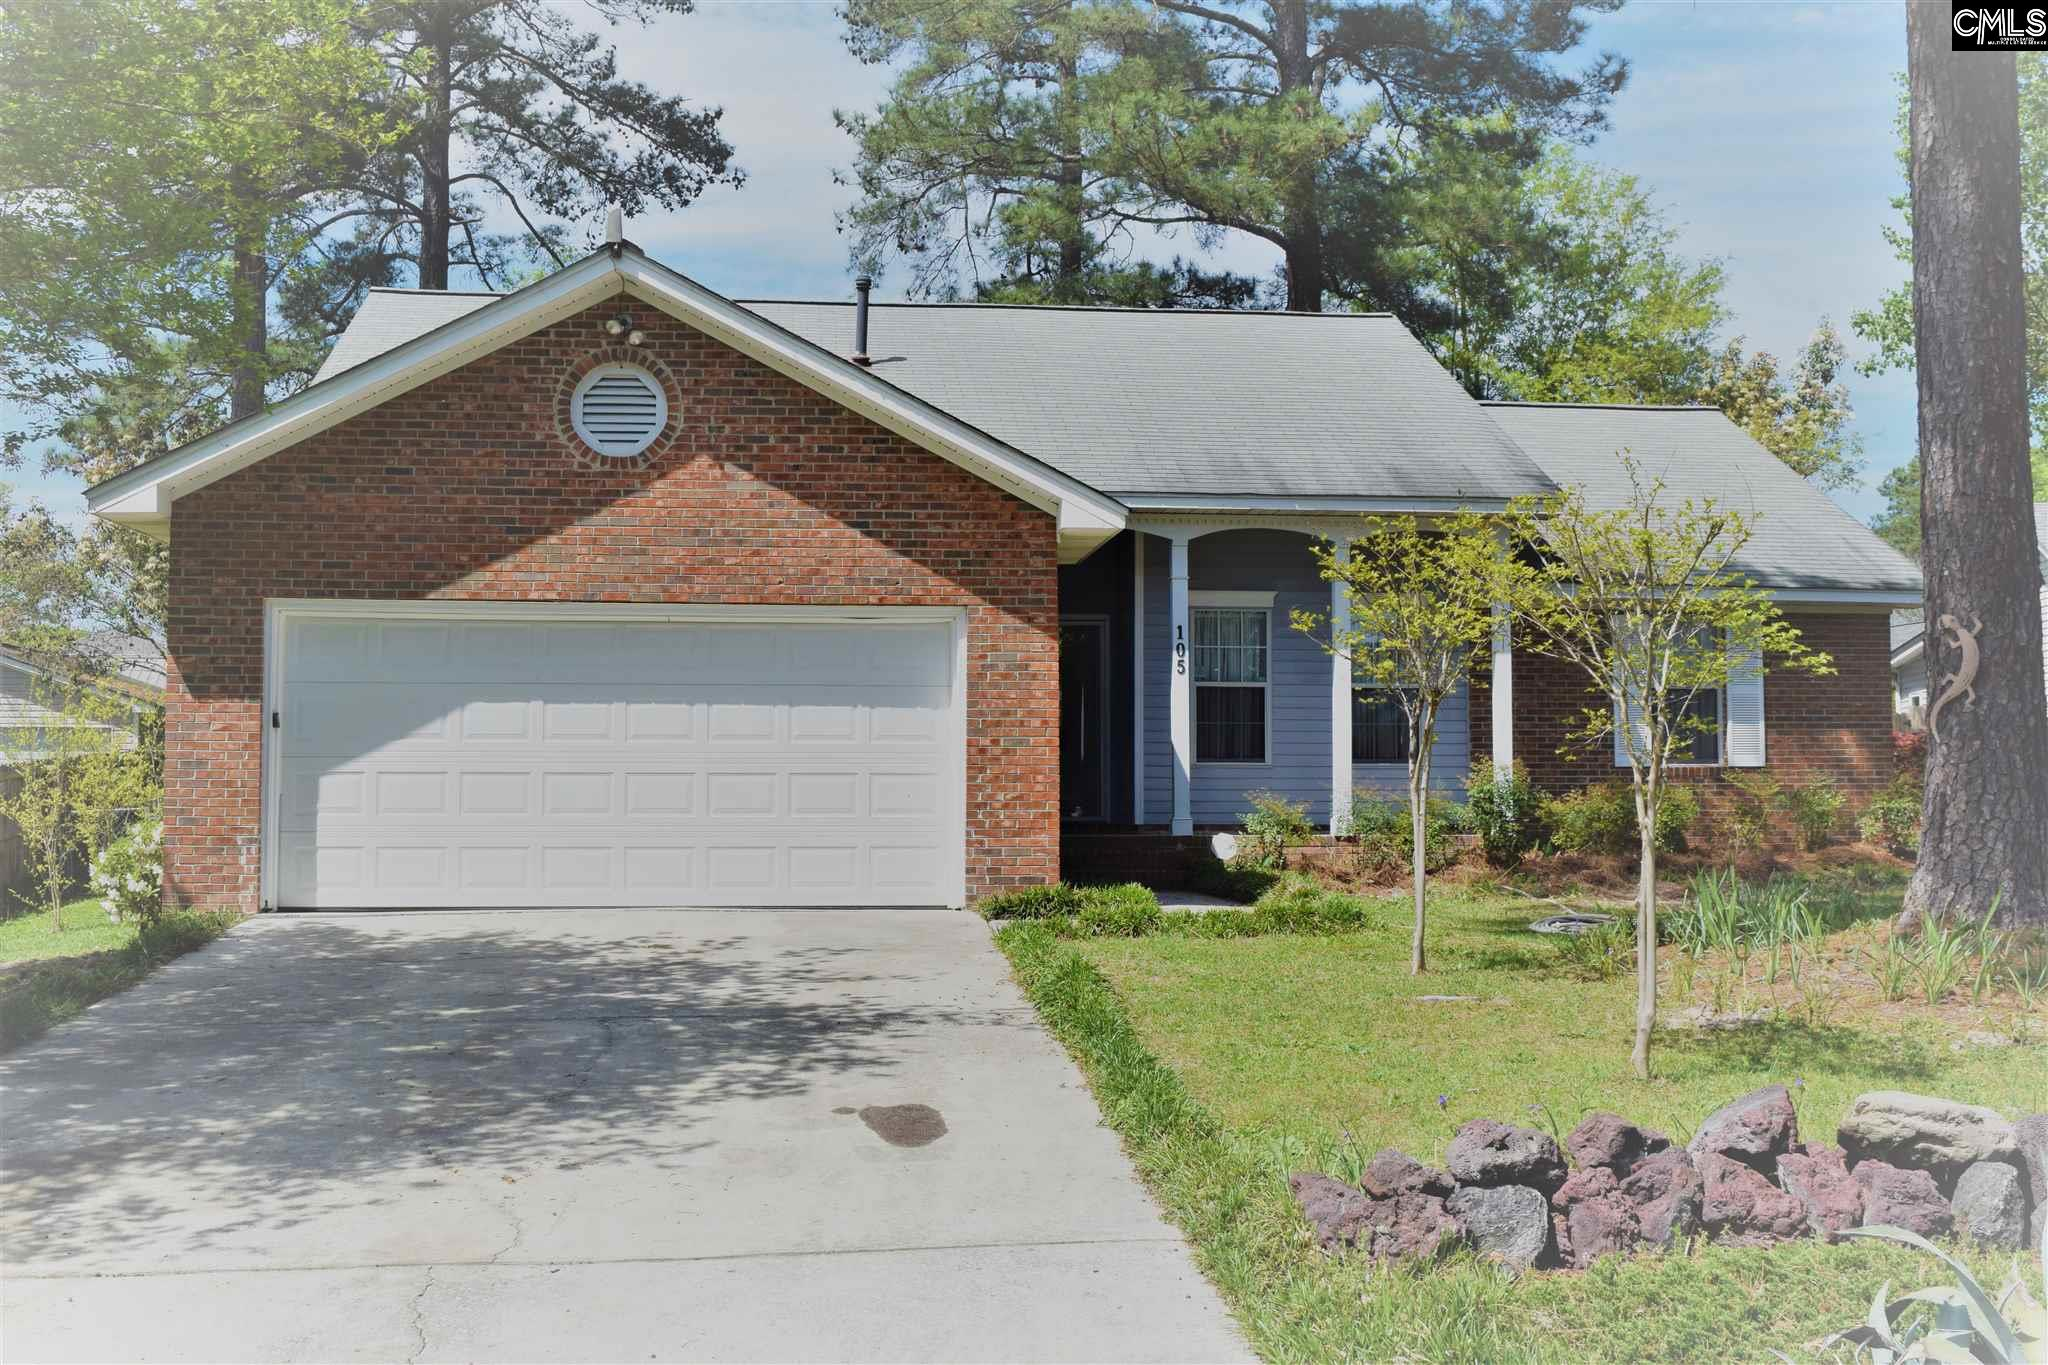 105 Dryden West Columbia, SC 29170